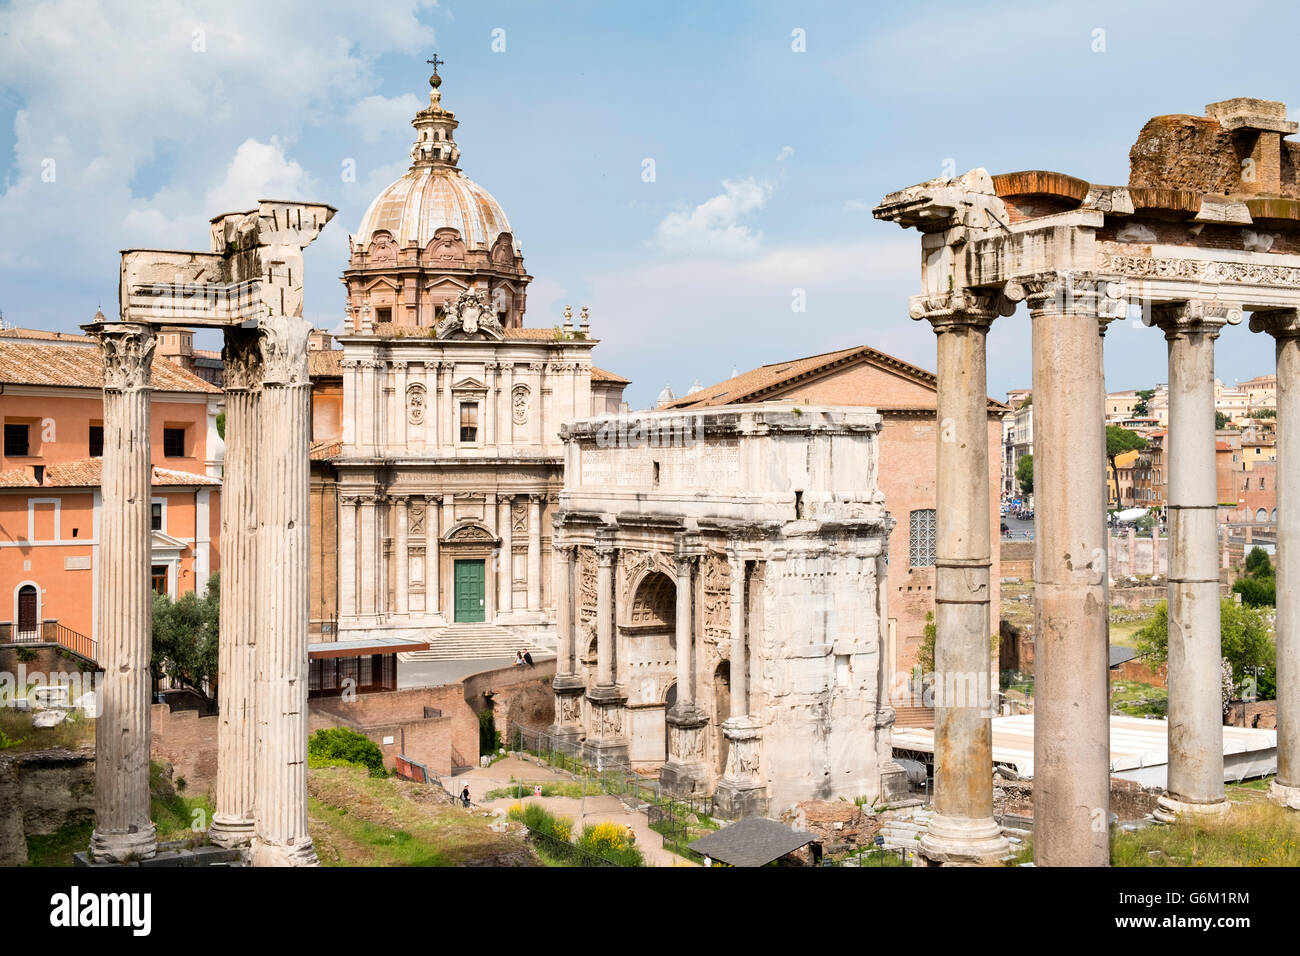 View of the Roman Forum with ruined columns of The Temple of Saturn on the right  in Rome, Italy - Stock Image